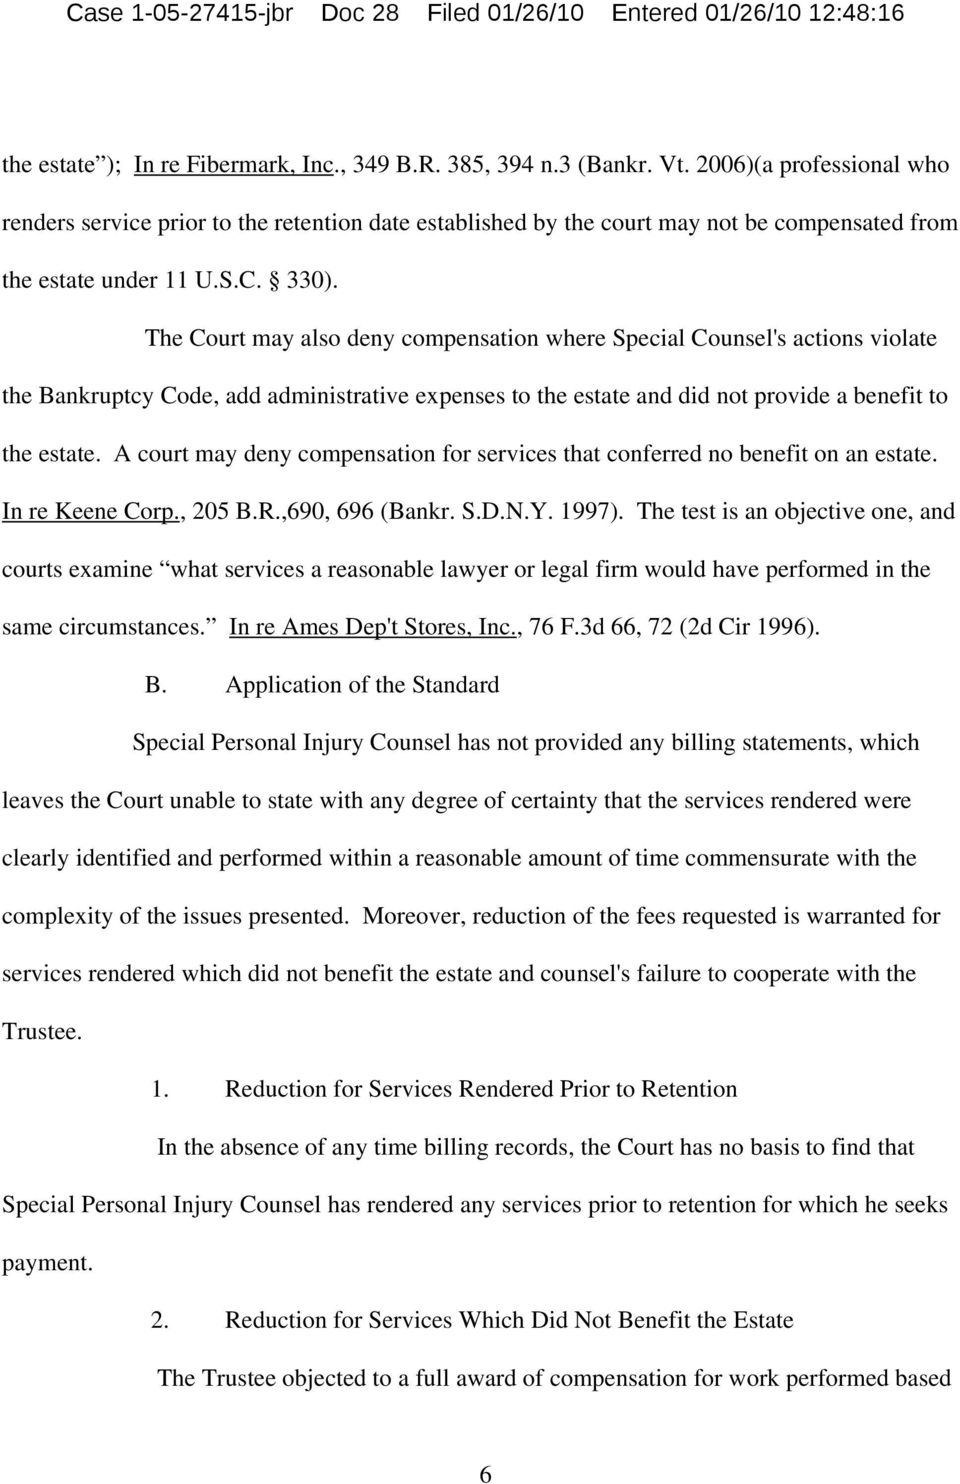 The Court may also deny compensation where Special Counsel's actions violate the Bankruptcy Code, add administrative expenses to the estate and did not provide a benefit to the estate.